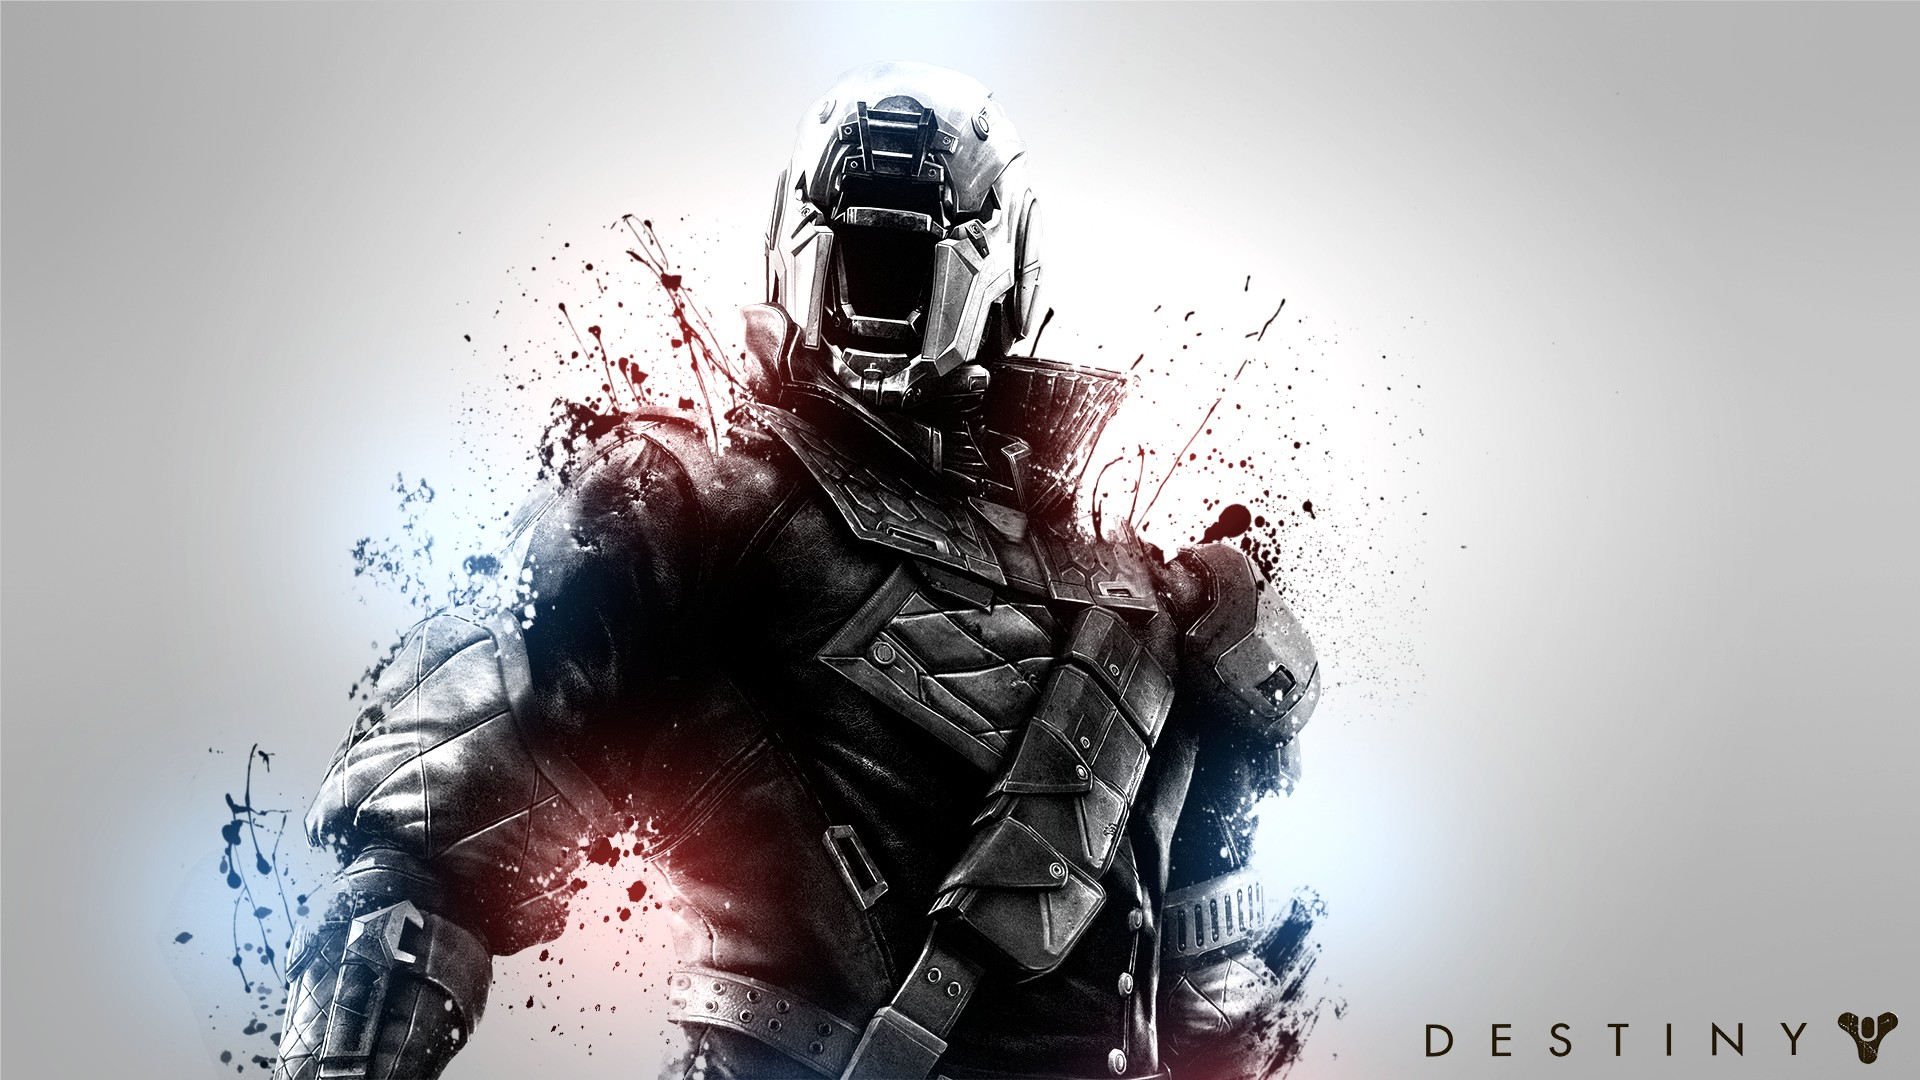 destiny warlock wallpaper download free amazing backgrounds for